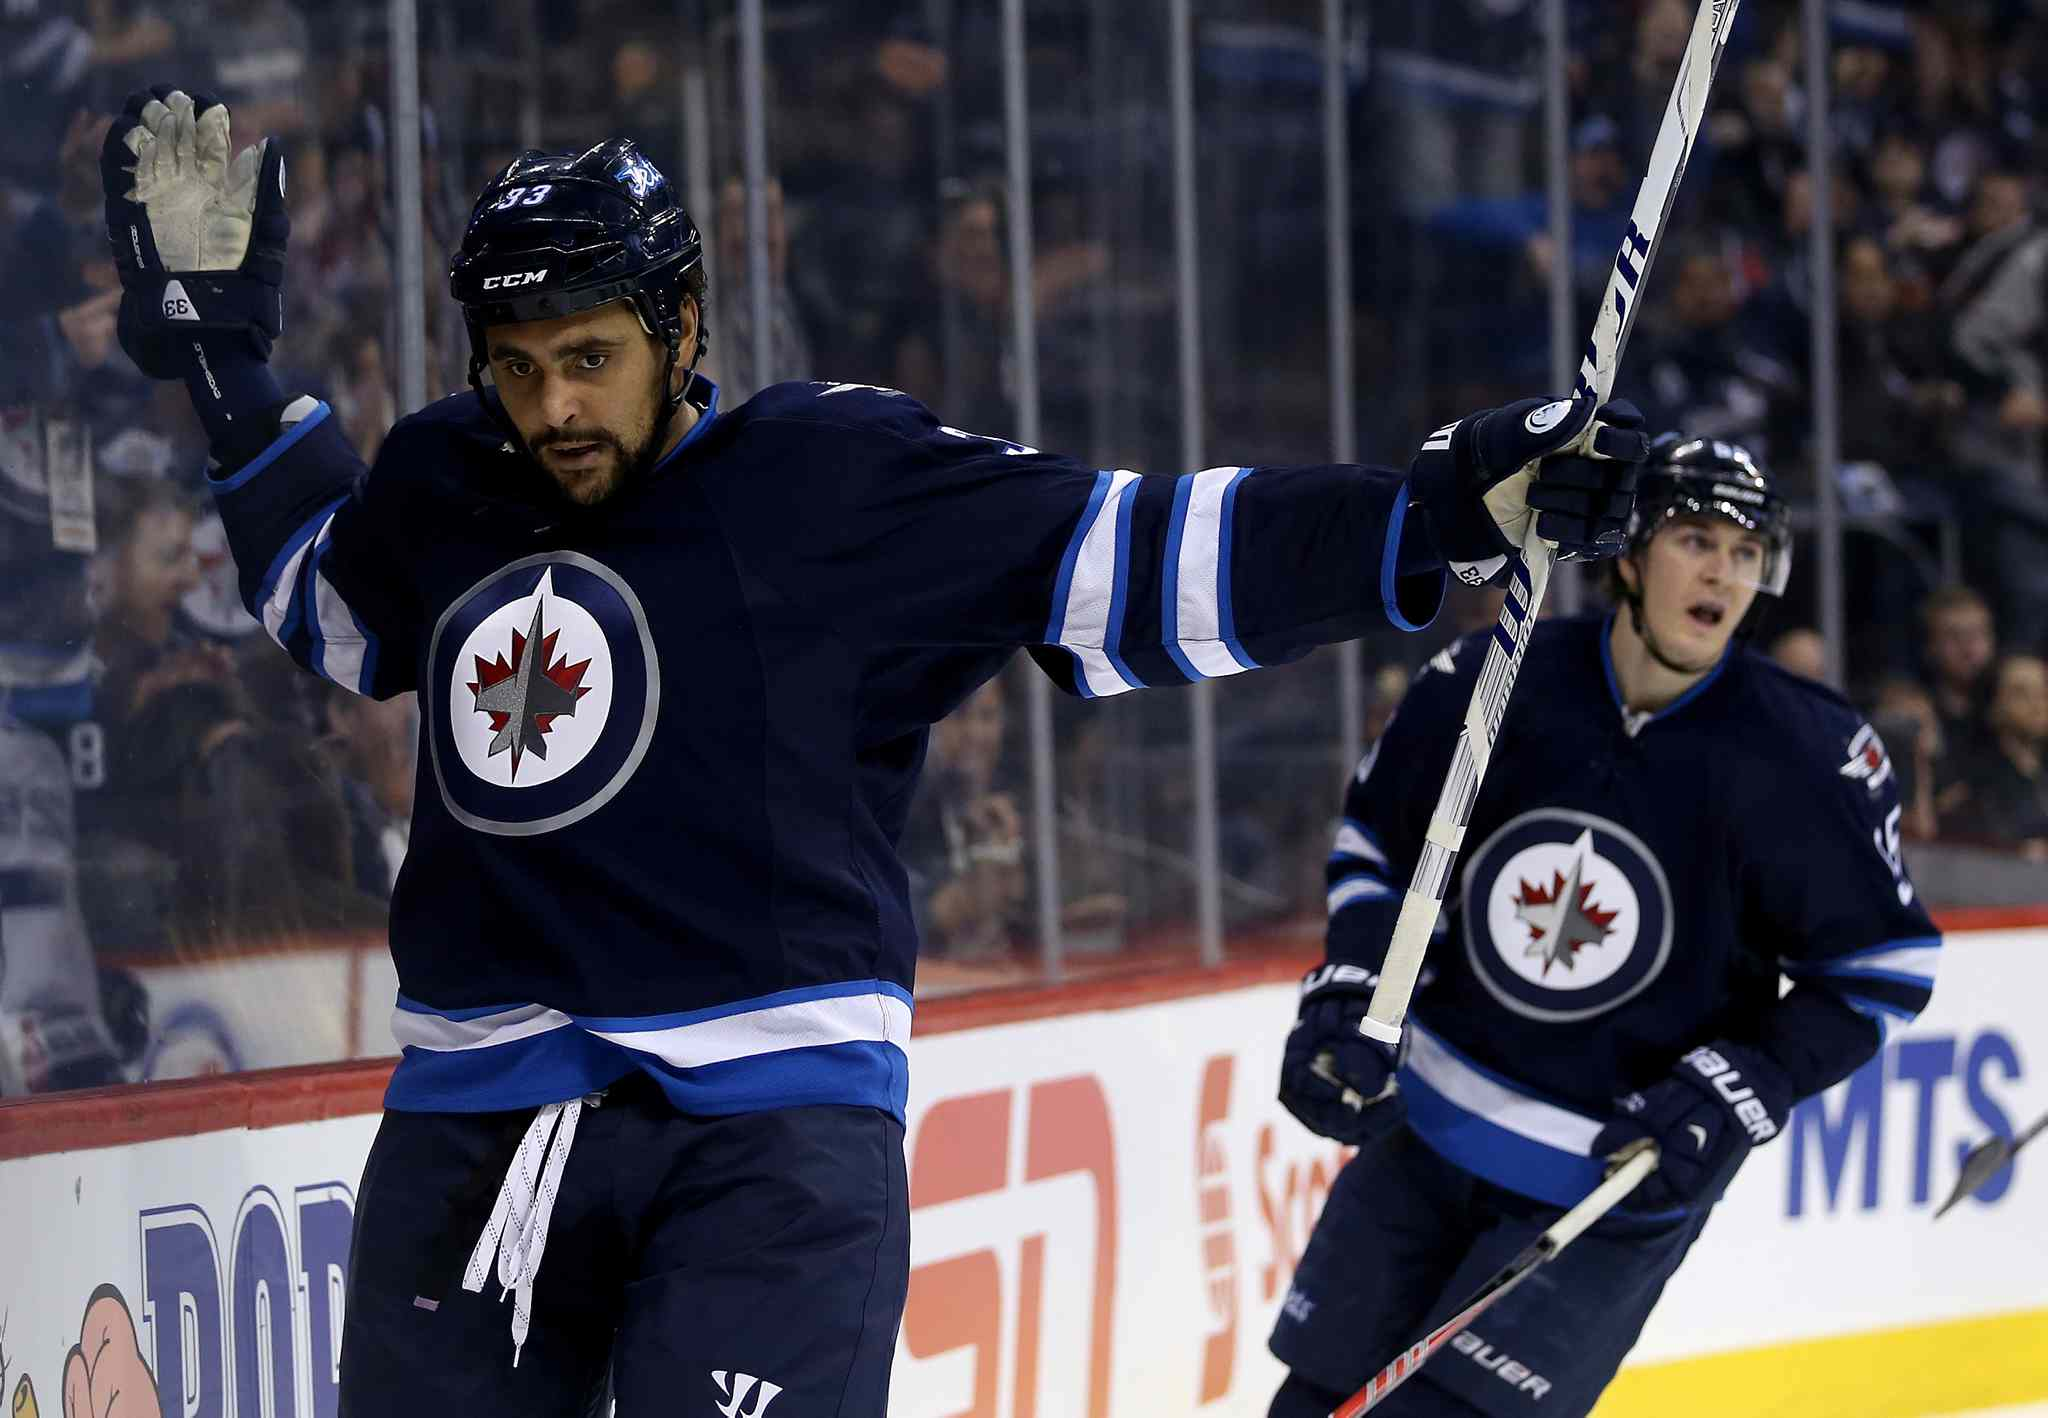 Winnipeg Jets' Dustin Byfuglien (33) celebrates a power play goal against the Tampa Bay Lightning during second period Tuesday.